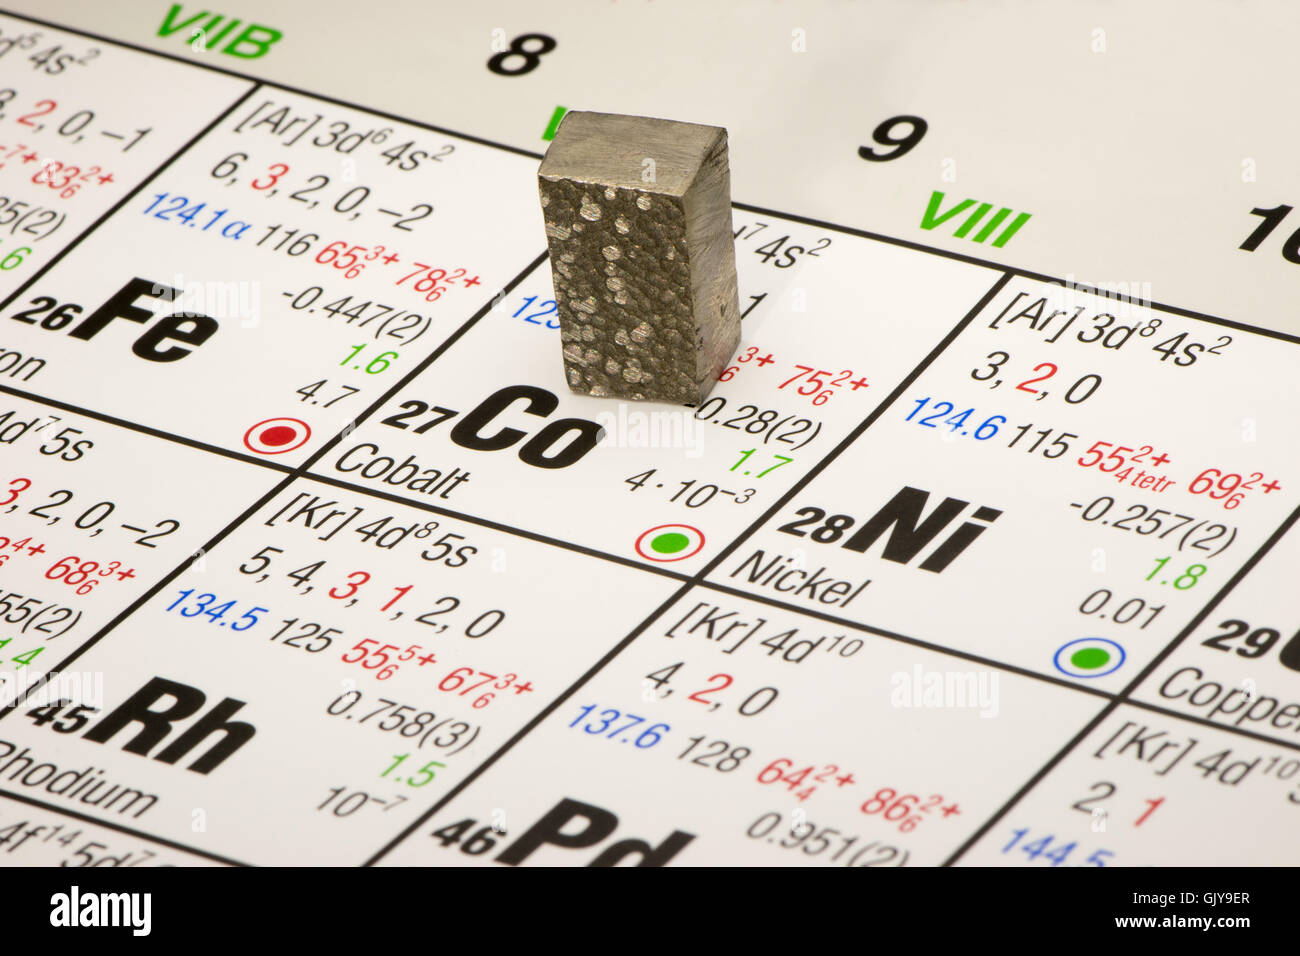 Cobalt placed on periodic table of elements stock photo royalty stock photo cobalt placed on periodic table of elements gamestrikefo Gallery